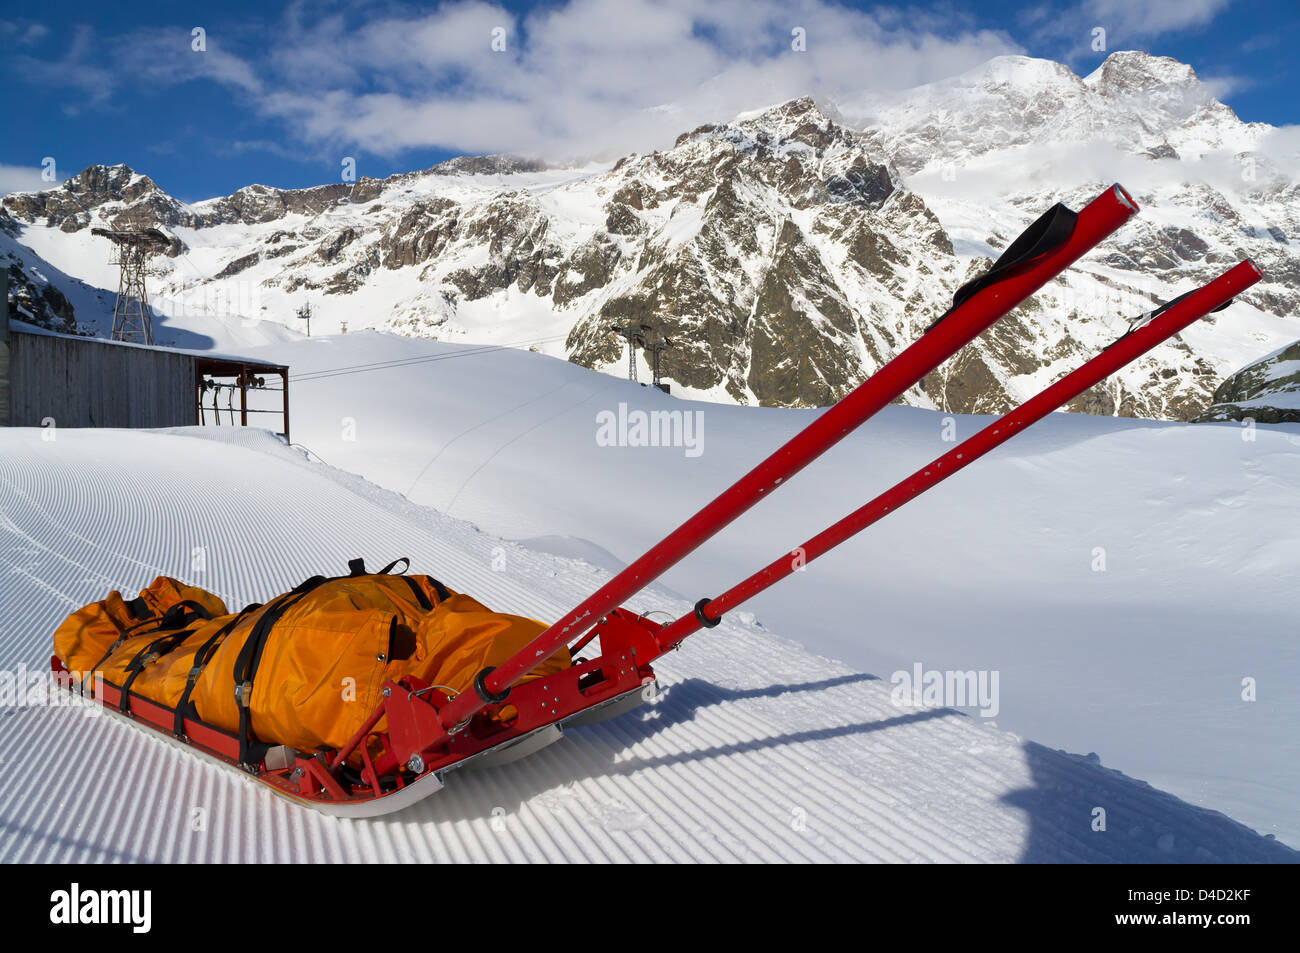 Empty mountain rescue sled over snow on mountain - Stock Image